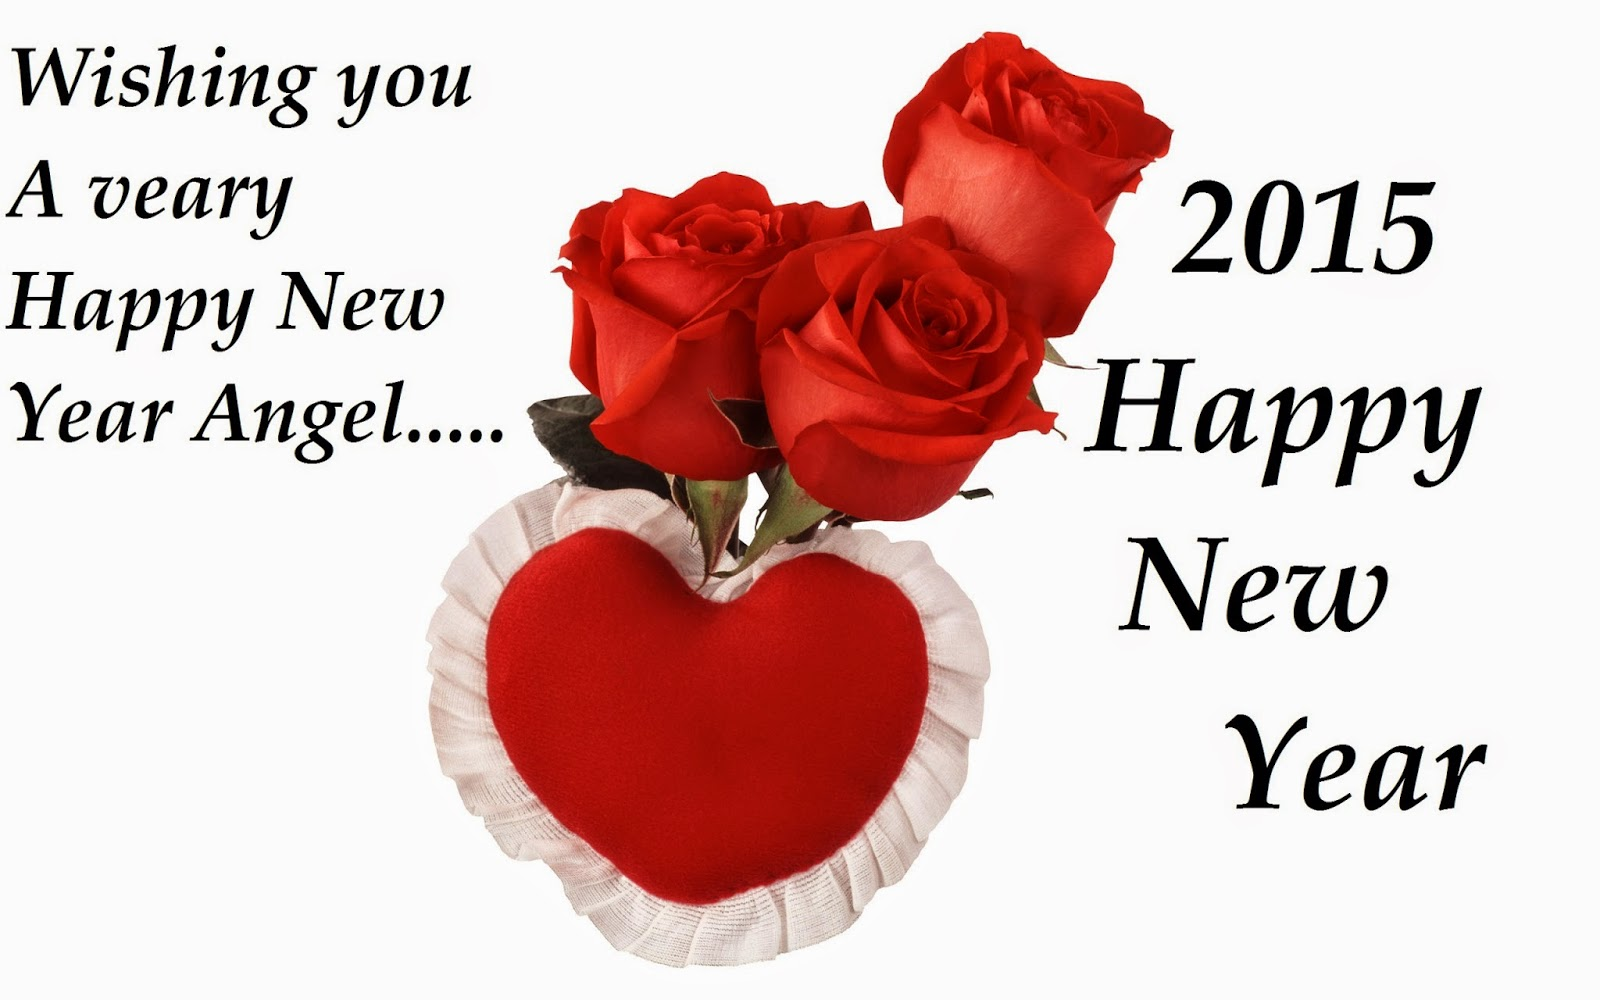 Happy New Year Red Roses Heart Greetings